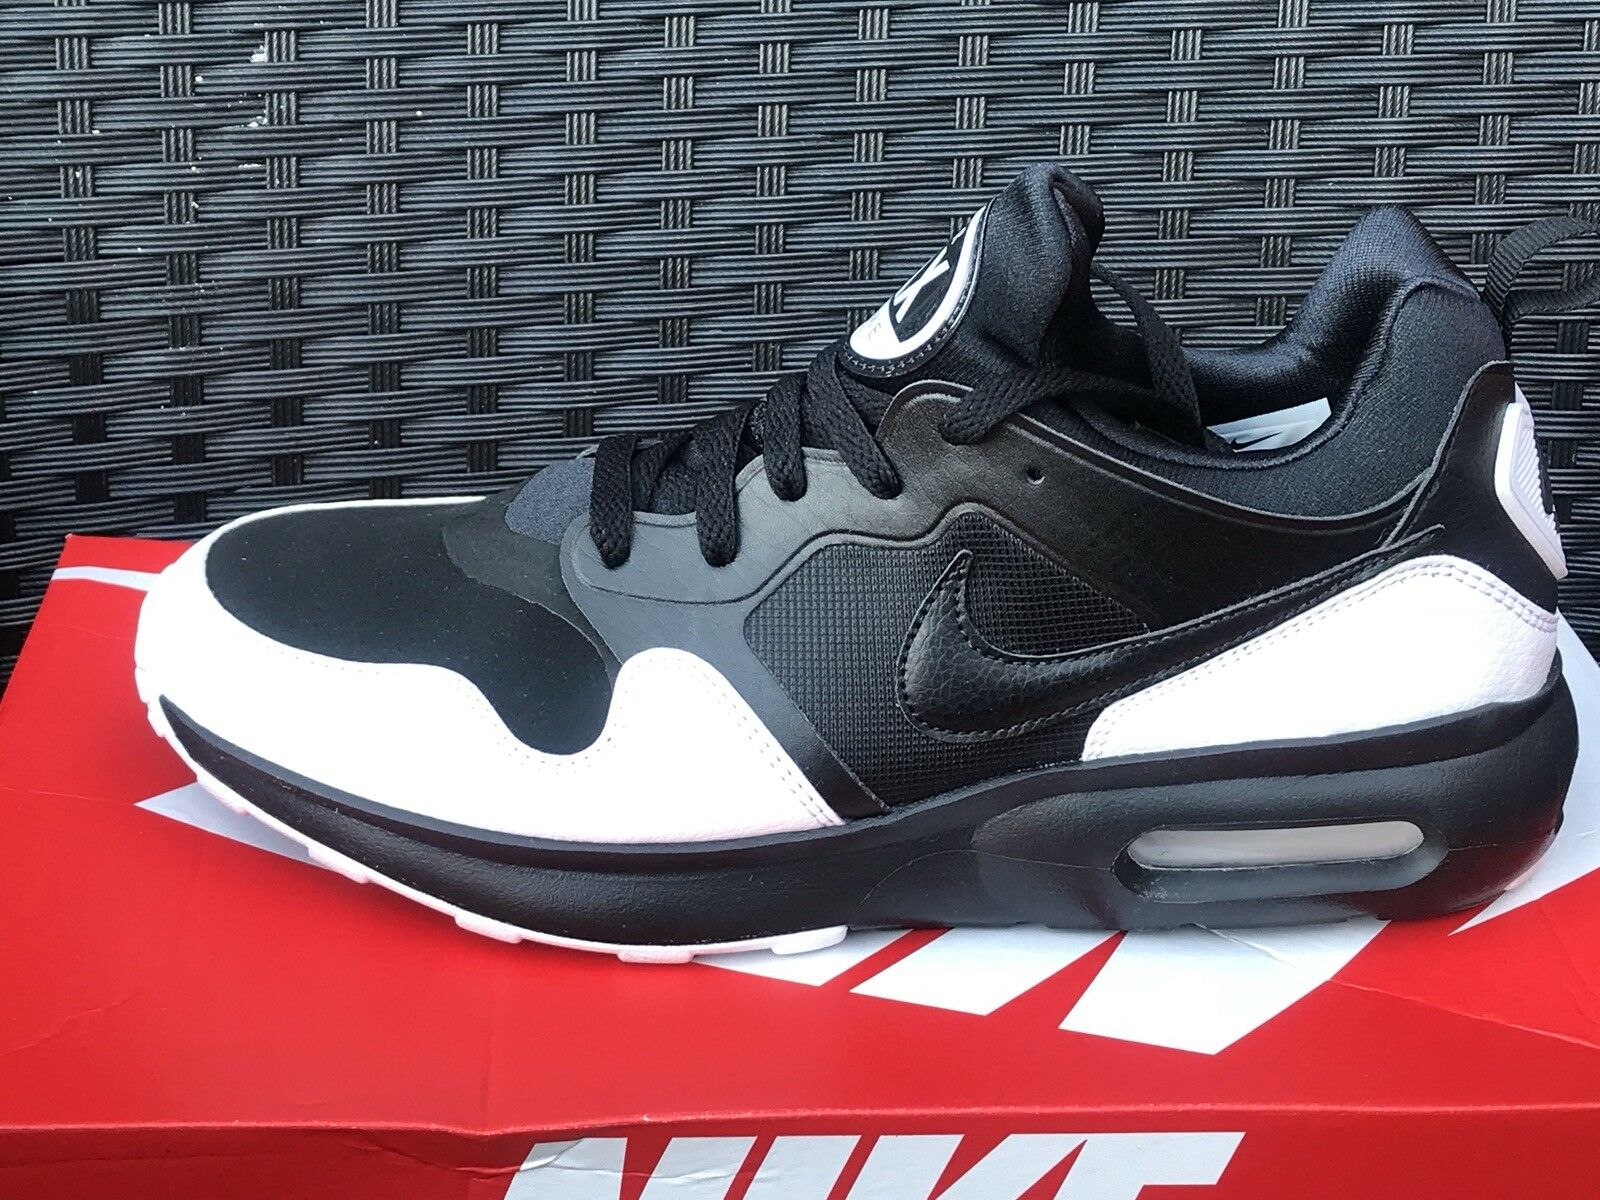 Nike Air Max Prime SL 10 Hommes Chaussures Trainers Uk 10 SL Eur 45 7f290c